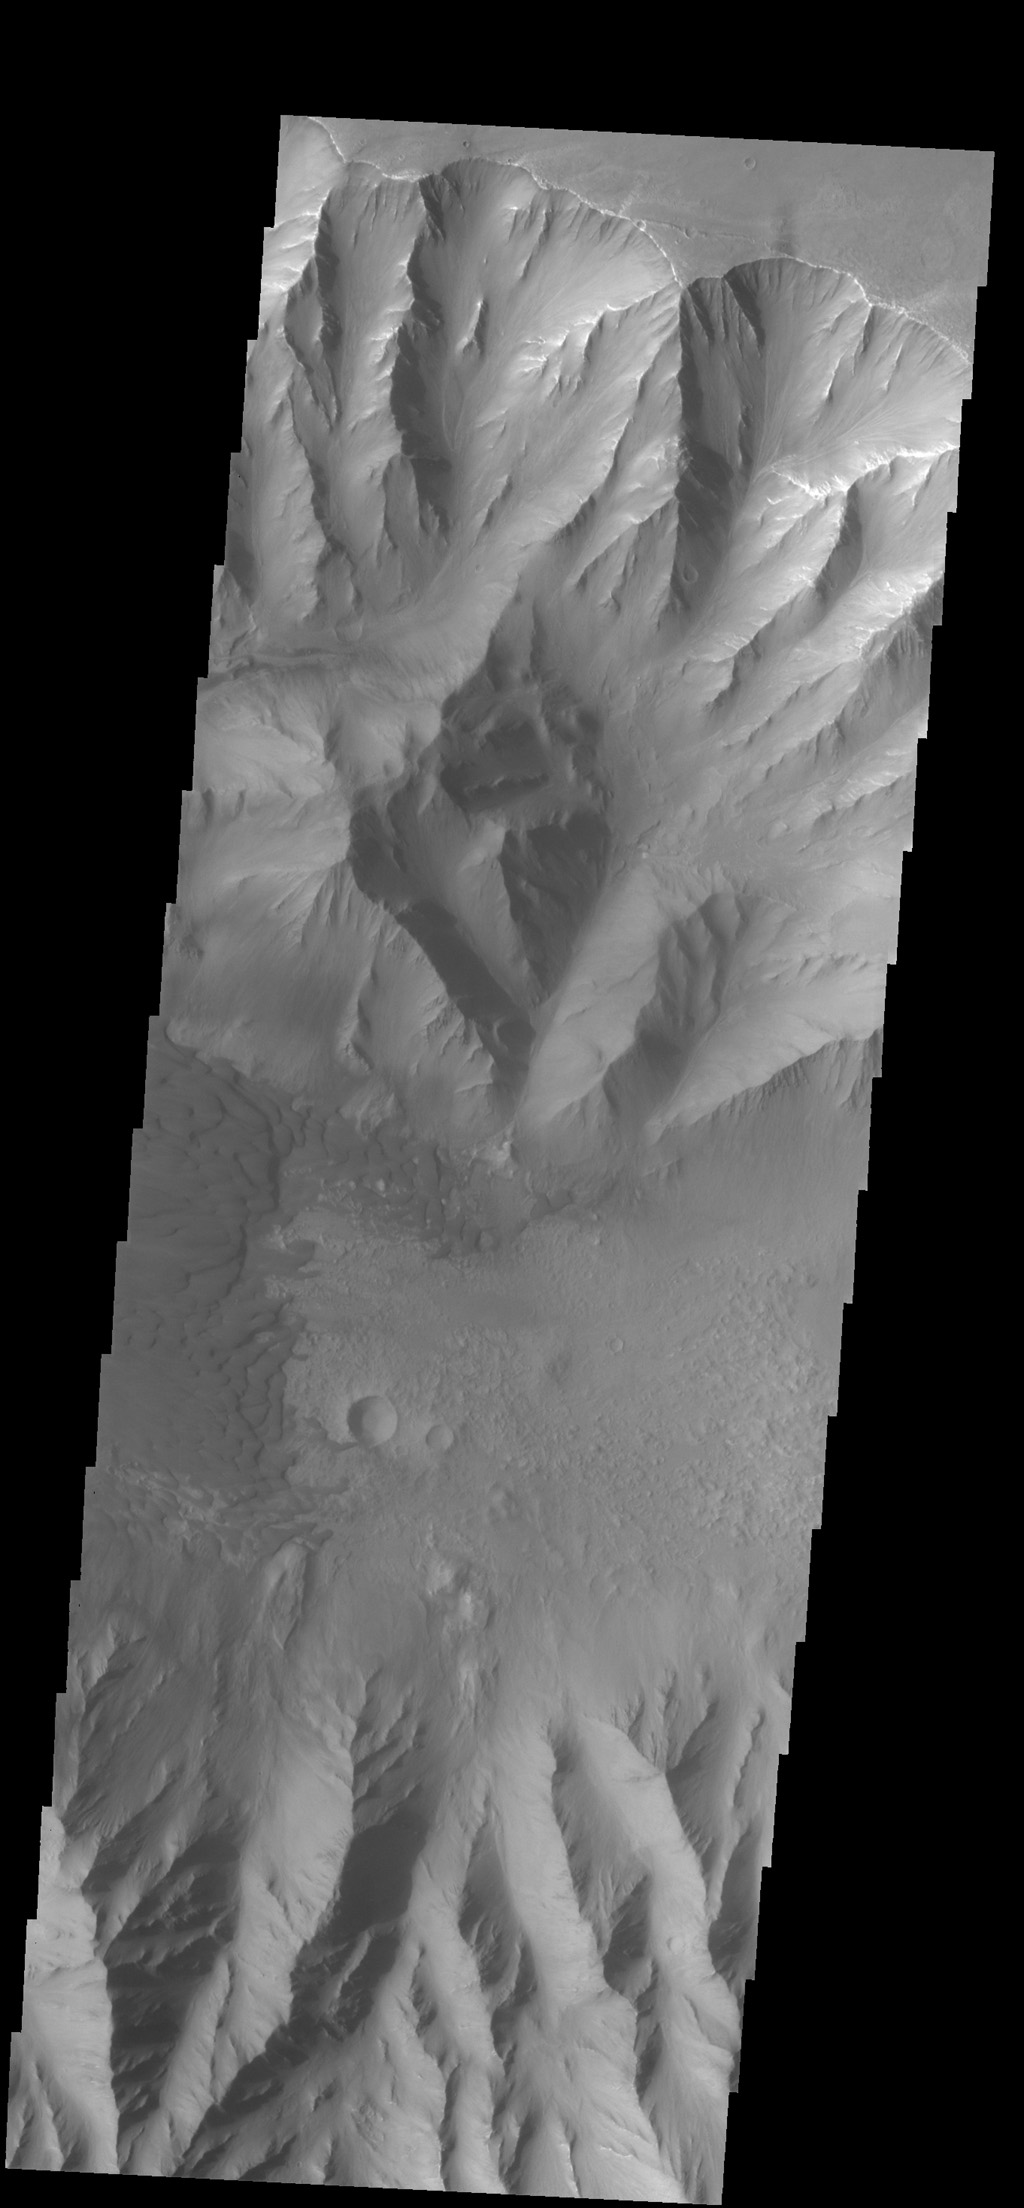 This image captured by NASA's 2001 Mars Odyssey spacecraft shows part of the floor of Coprates Chasma, including a large sand sheet and smaller dunes.